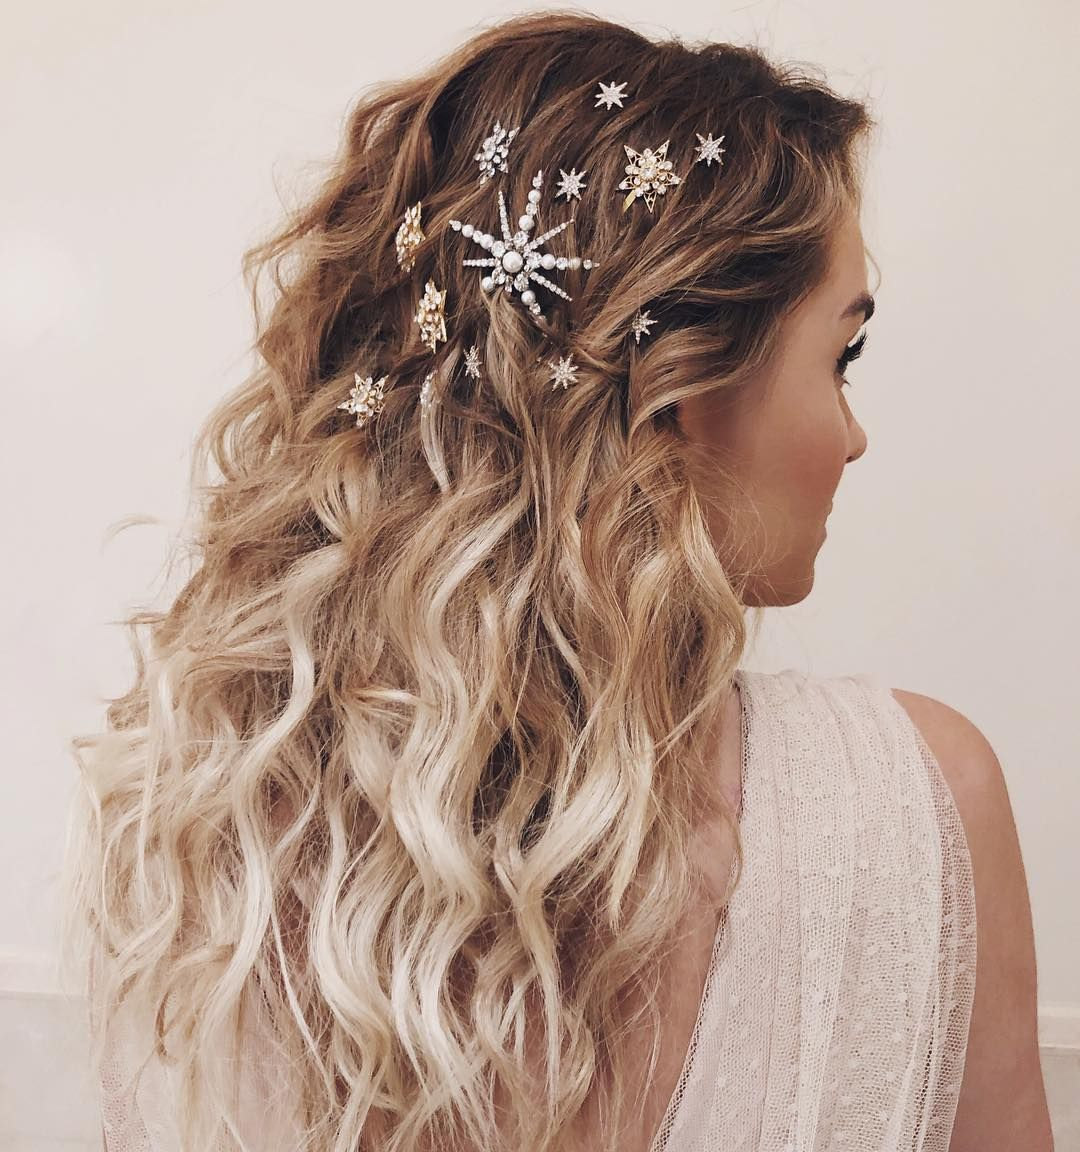 13 Easy Ways to Style Your Hair for Every Christmas Party This Year #holidayhair